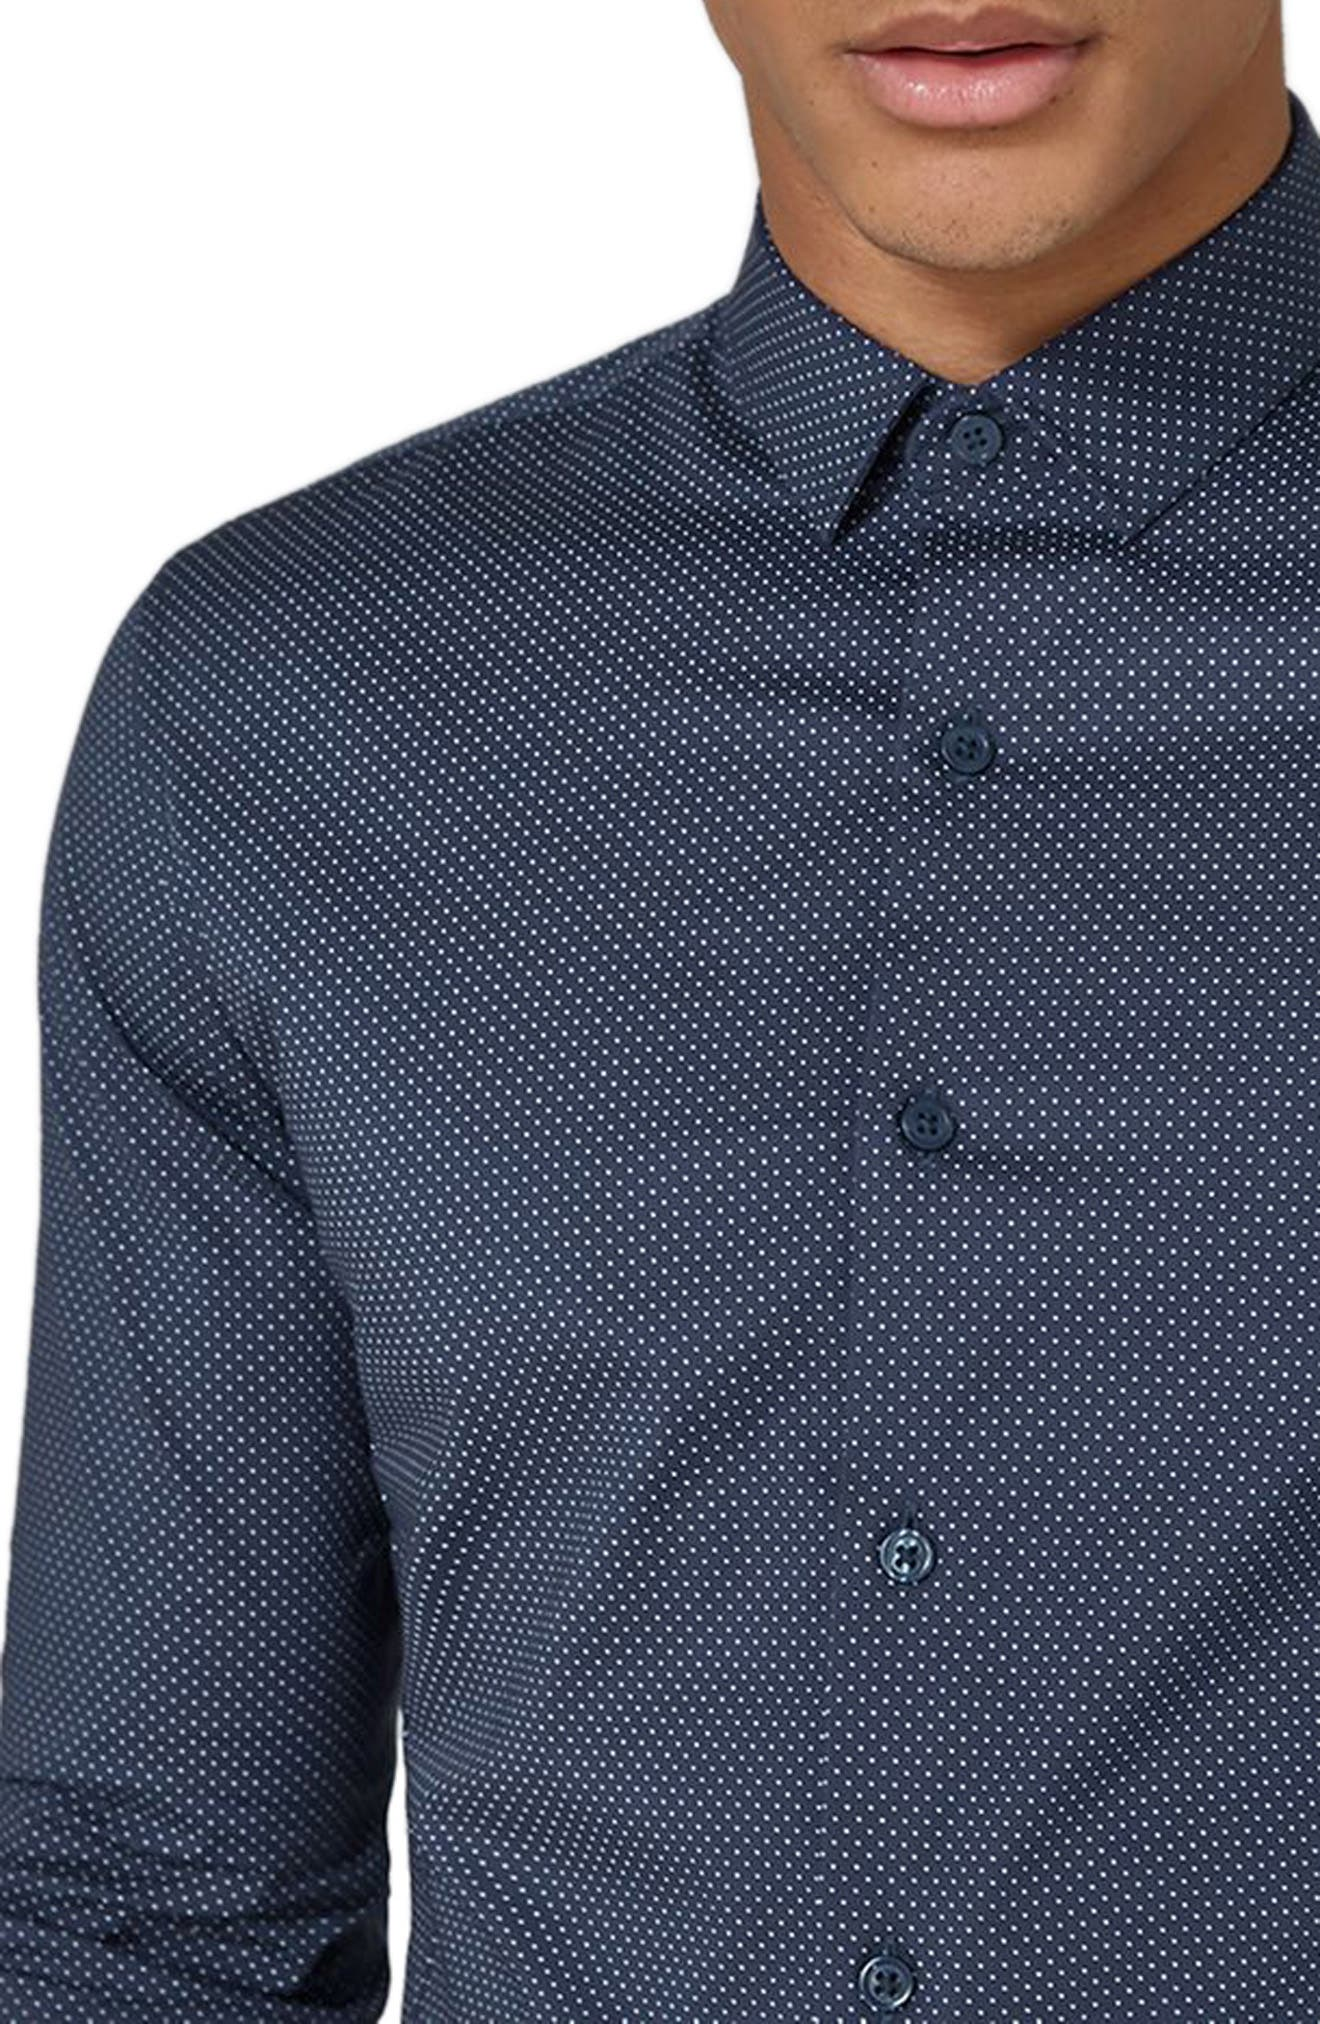 Polka Dot Stretch Smart Shirt,                             Alternate thumbnail 3, color,                             Navy Blue Multi